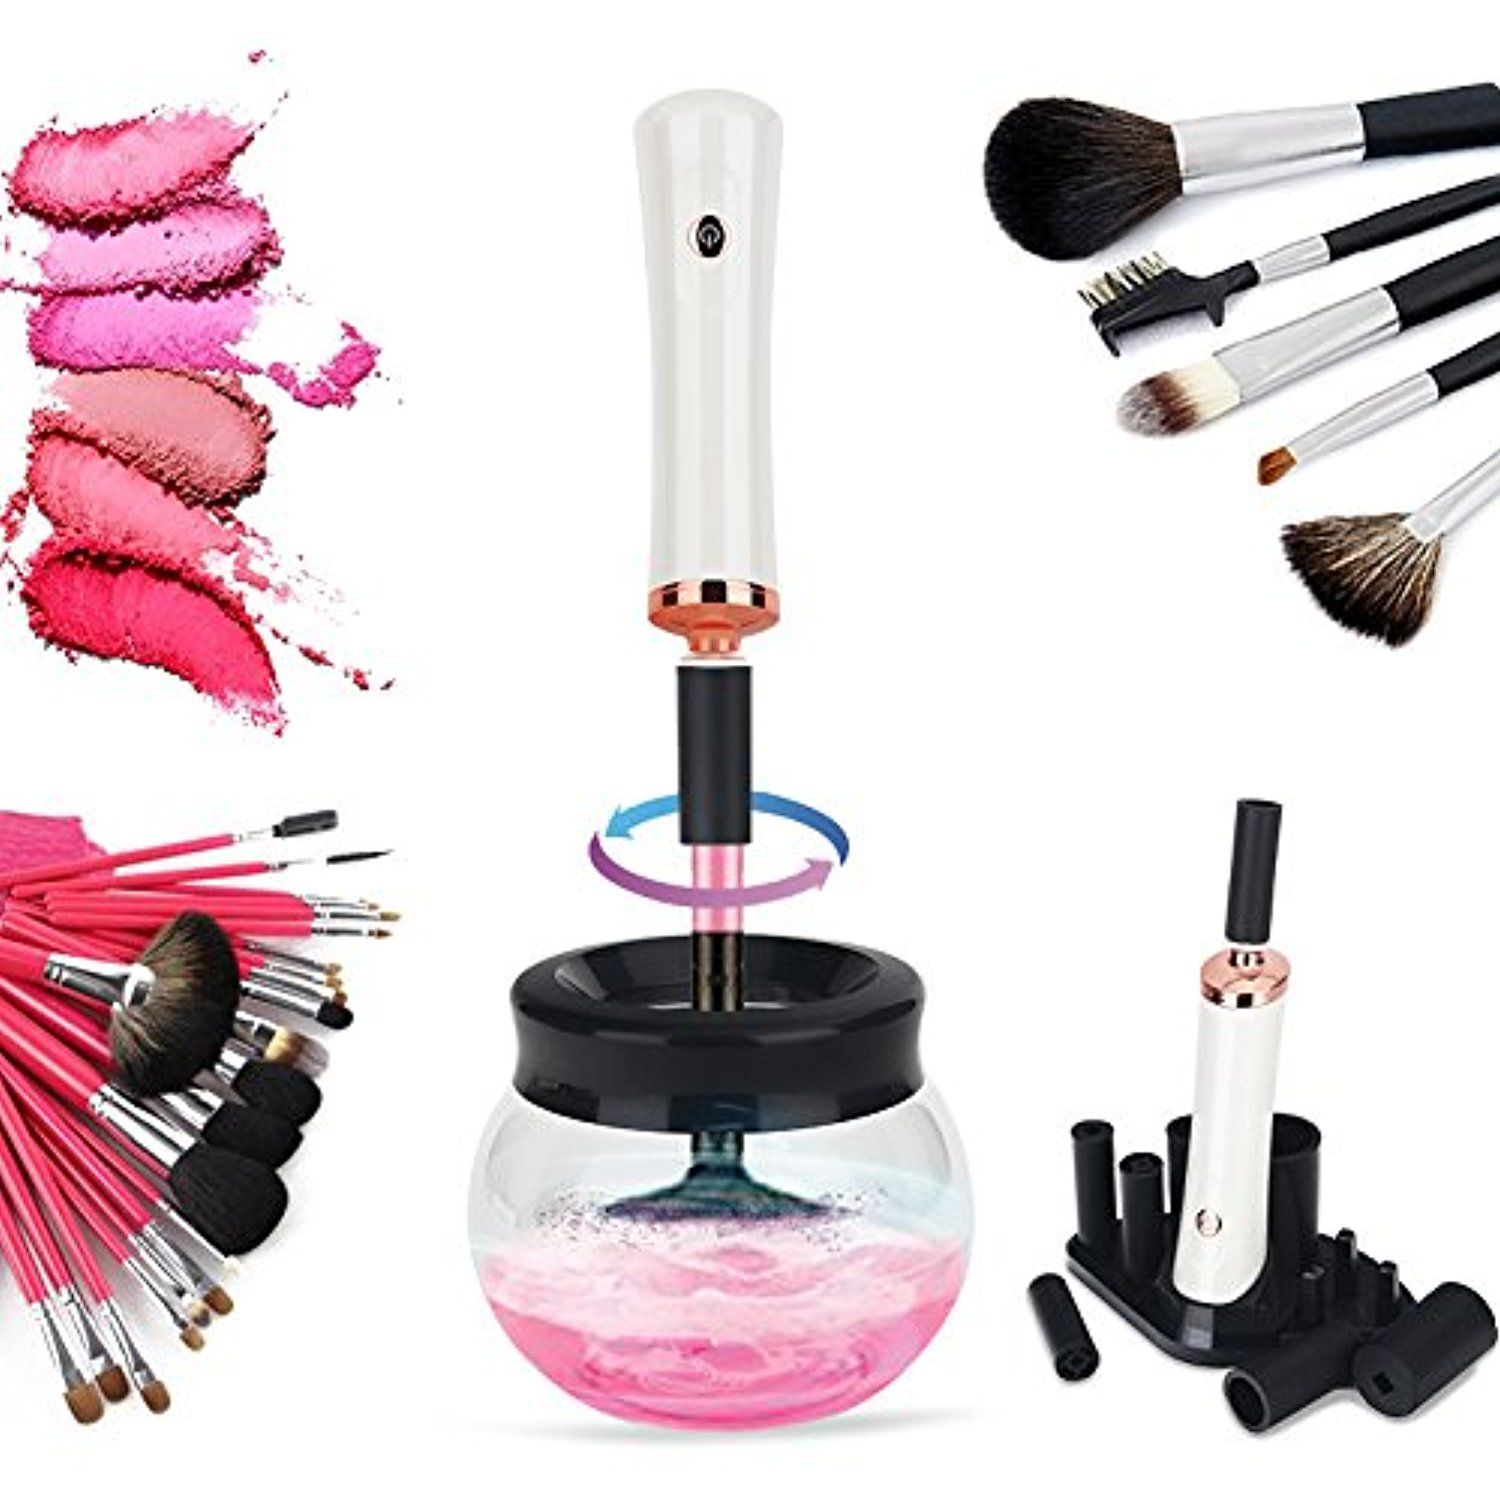 Makeup Brush Cleaner  Electronic Makeup Brush Cleaning Kit, Professional